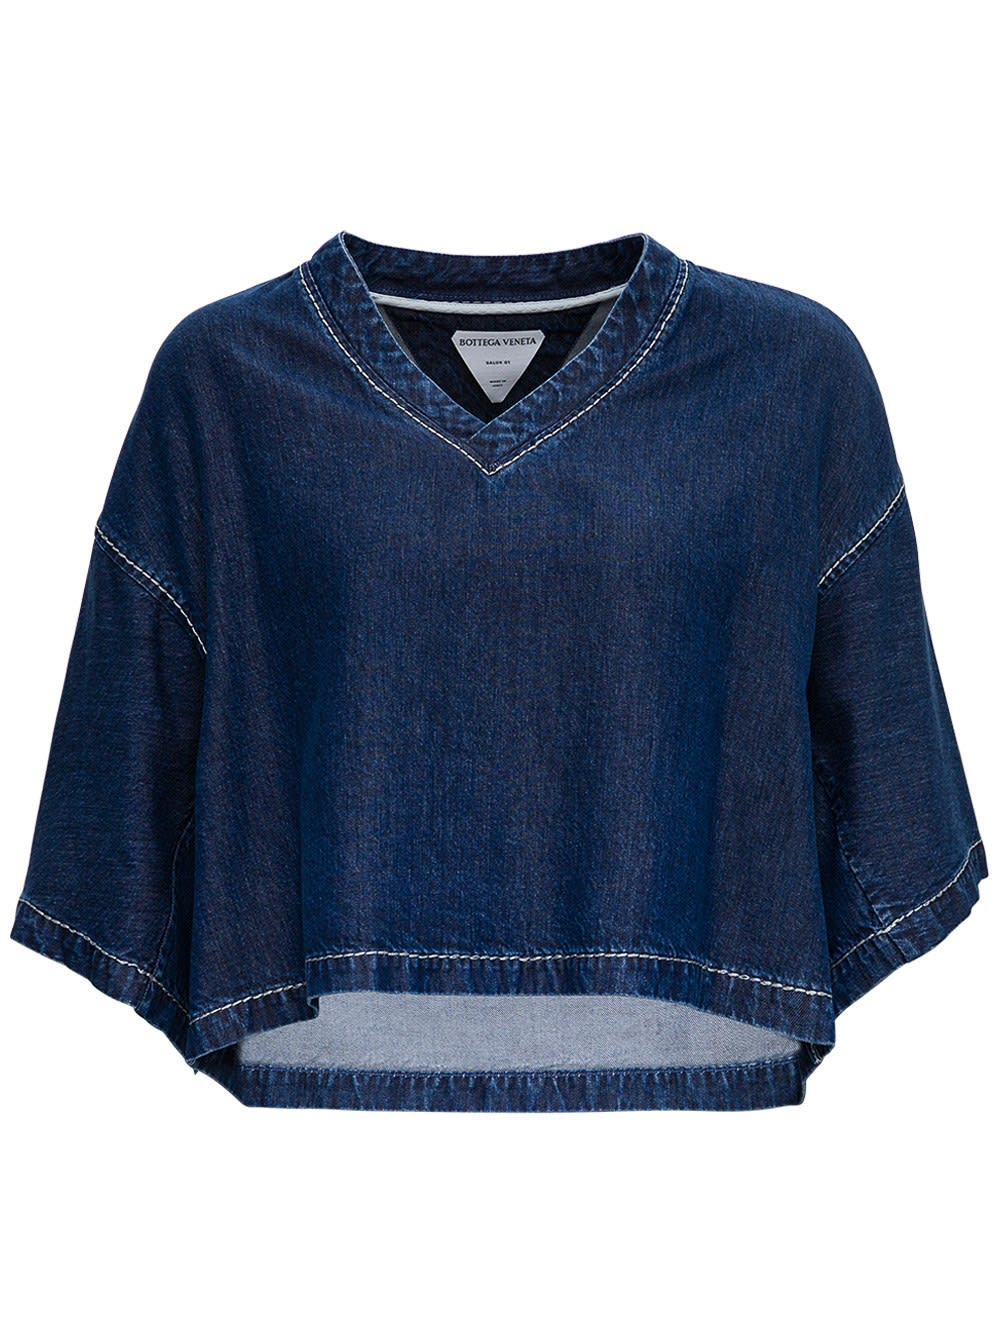 Bottega Veneta Cropped Top In Blue Denim